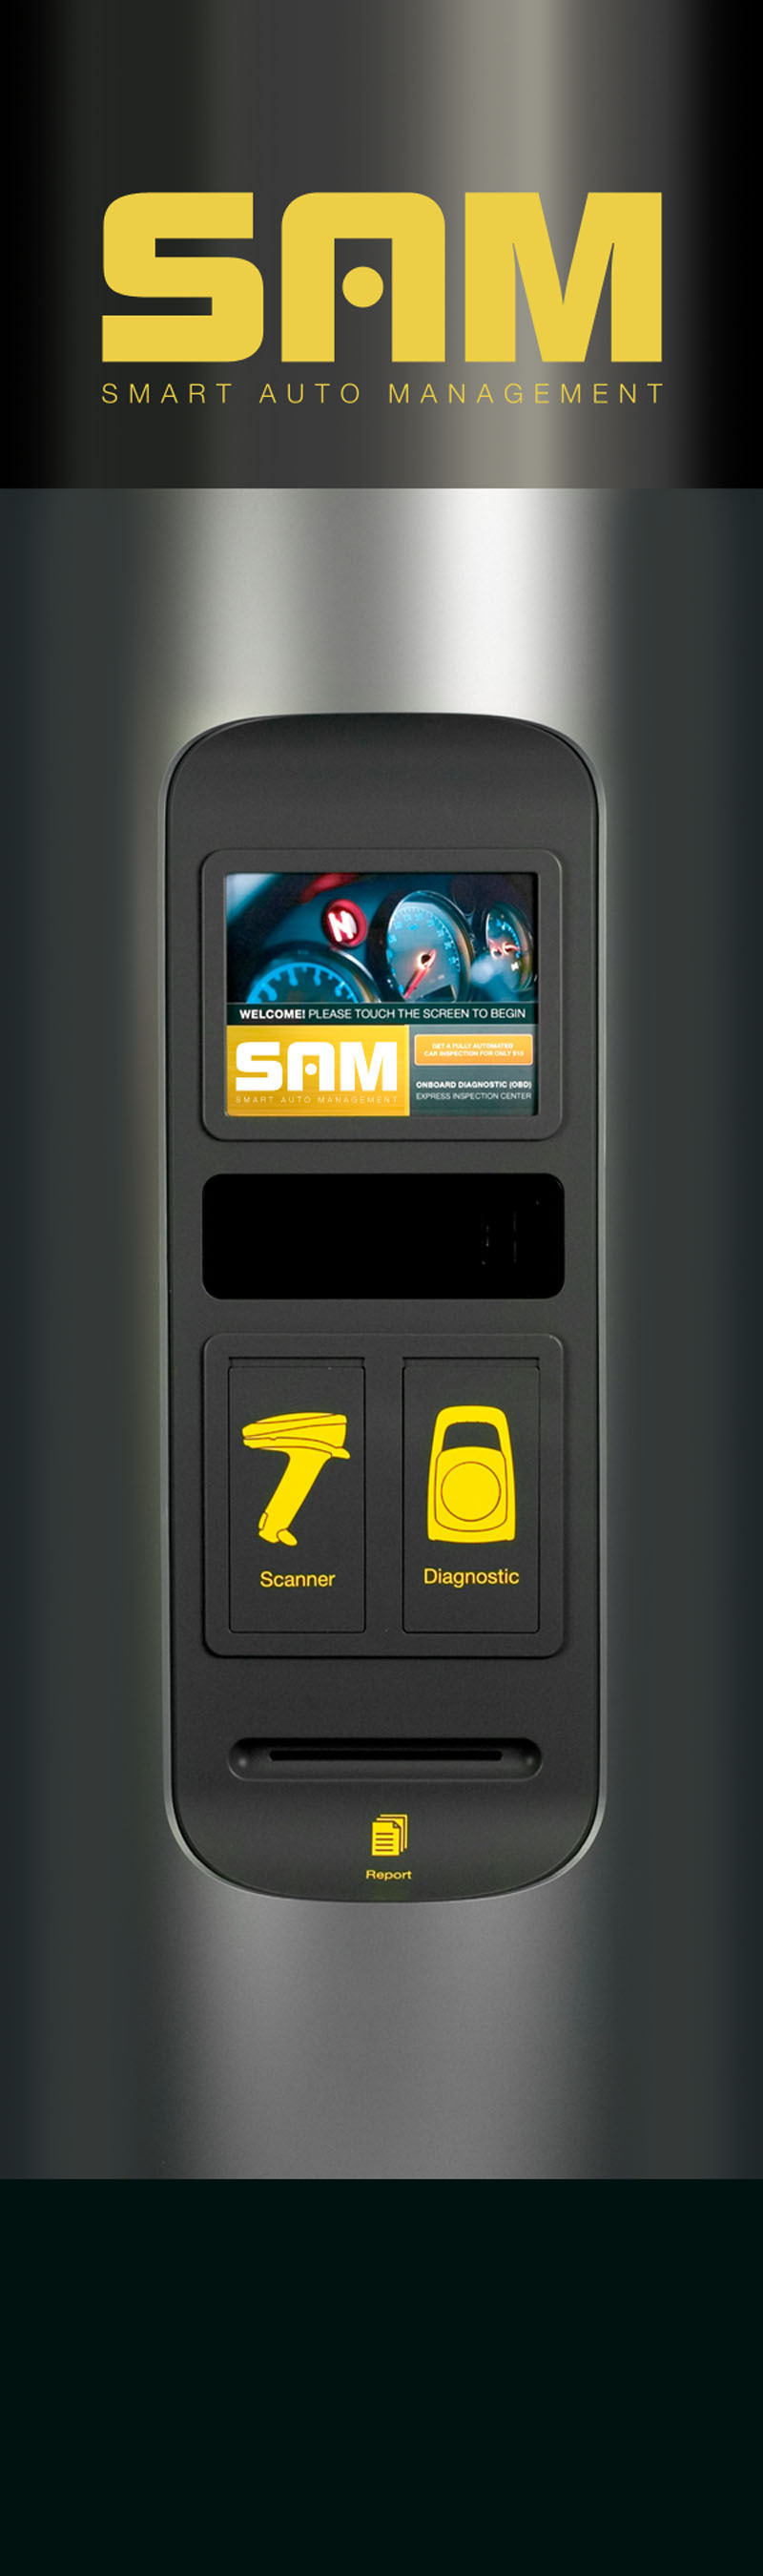 revolutionary automotive kiosk 39 sam 39 scans analyzes and reports important vehicle information. Black Bedroom Furniture Sets. Home Design Ideas